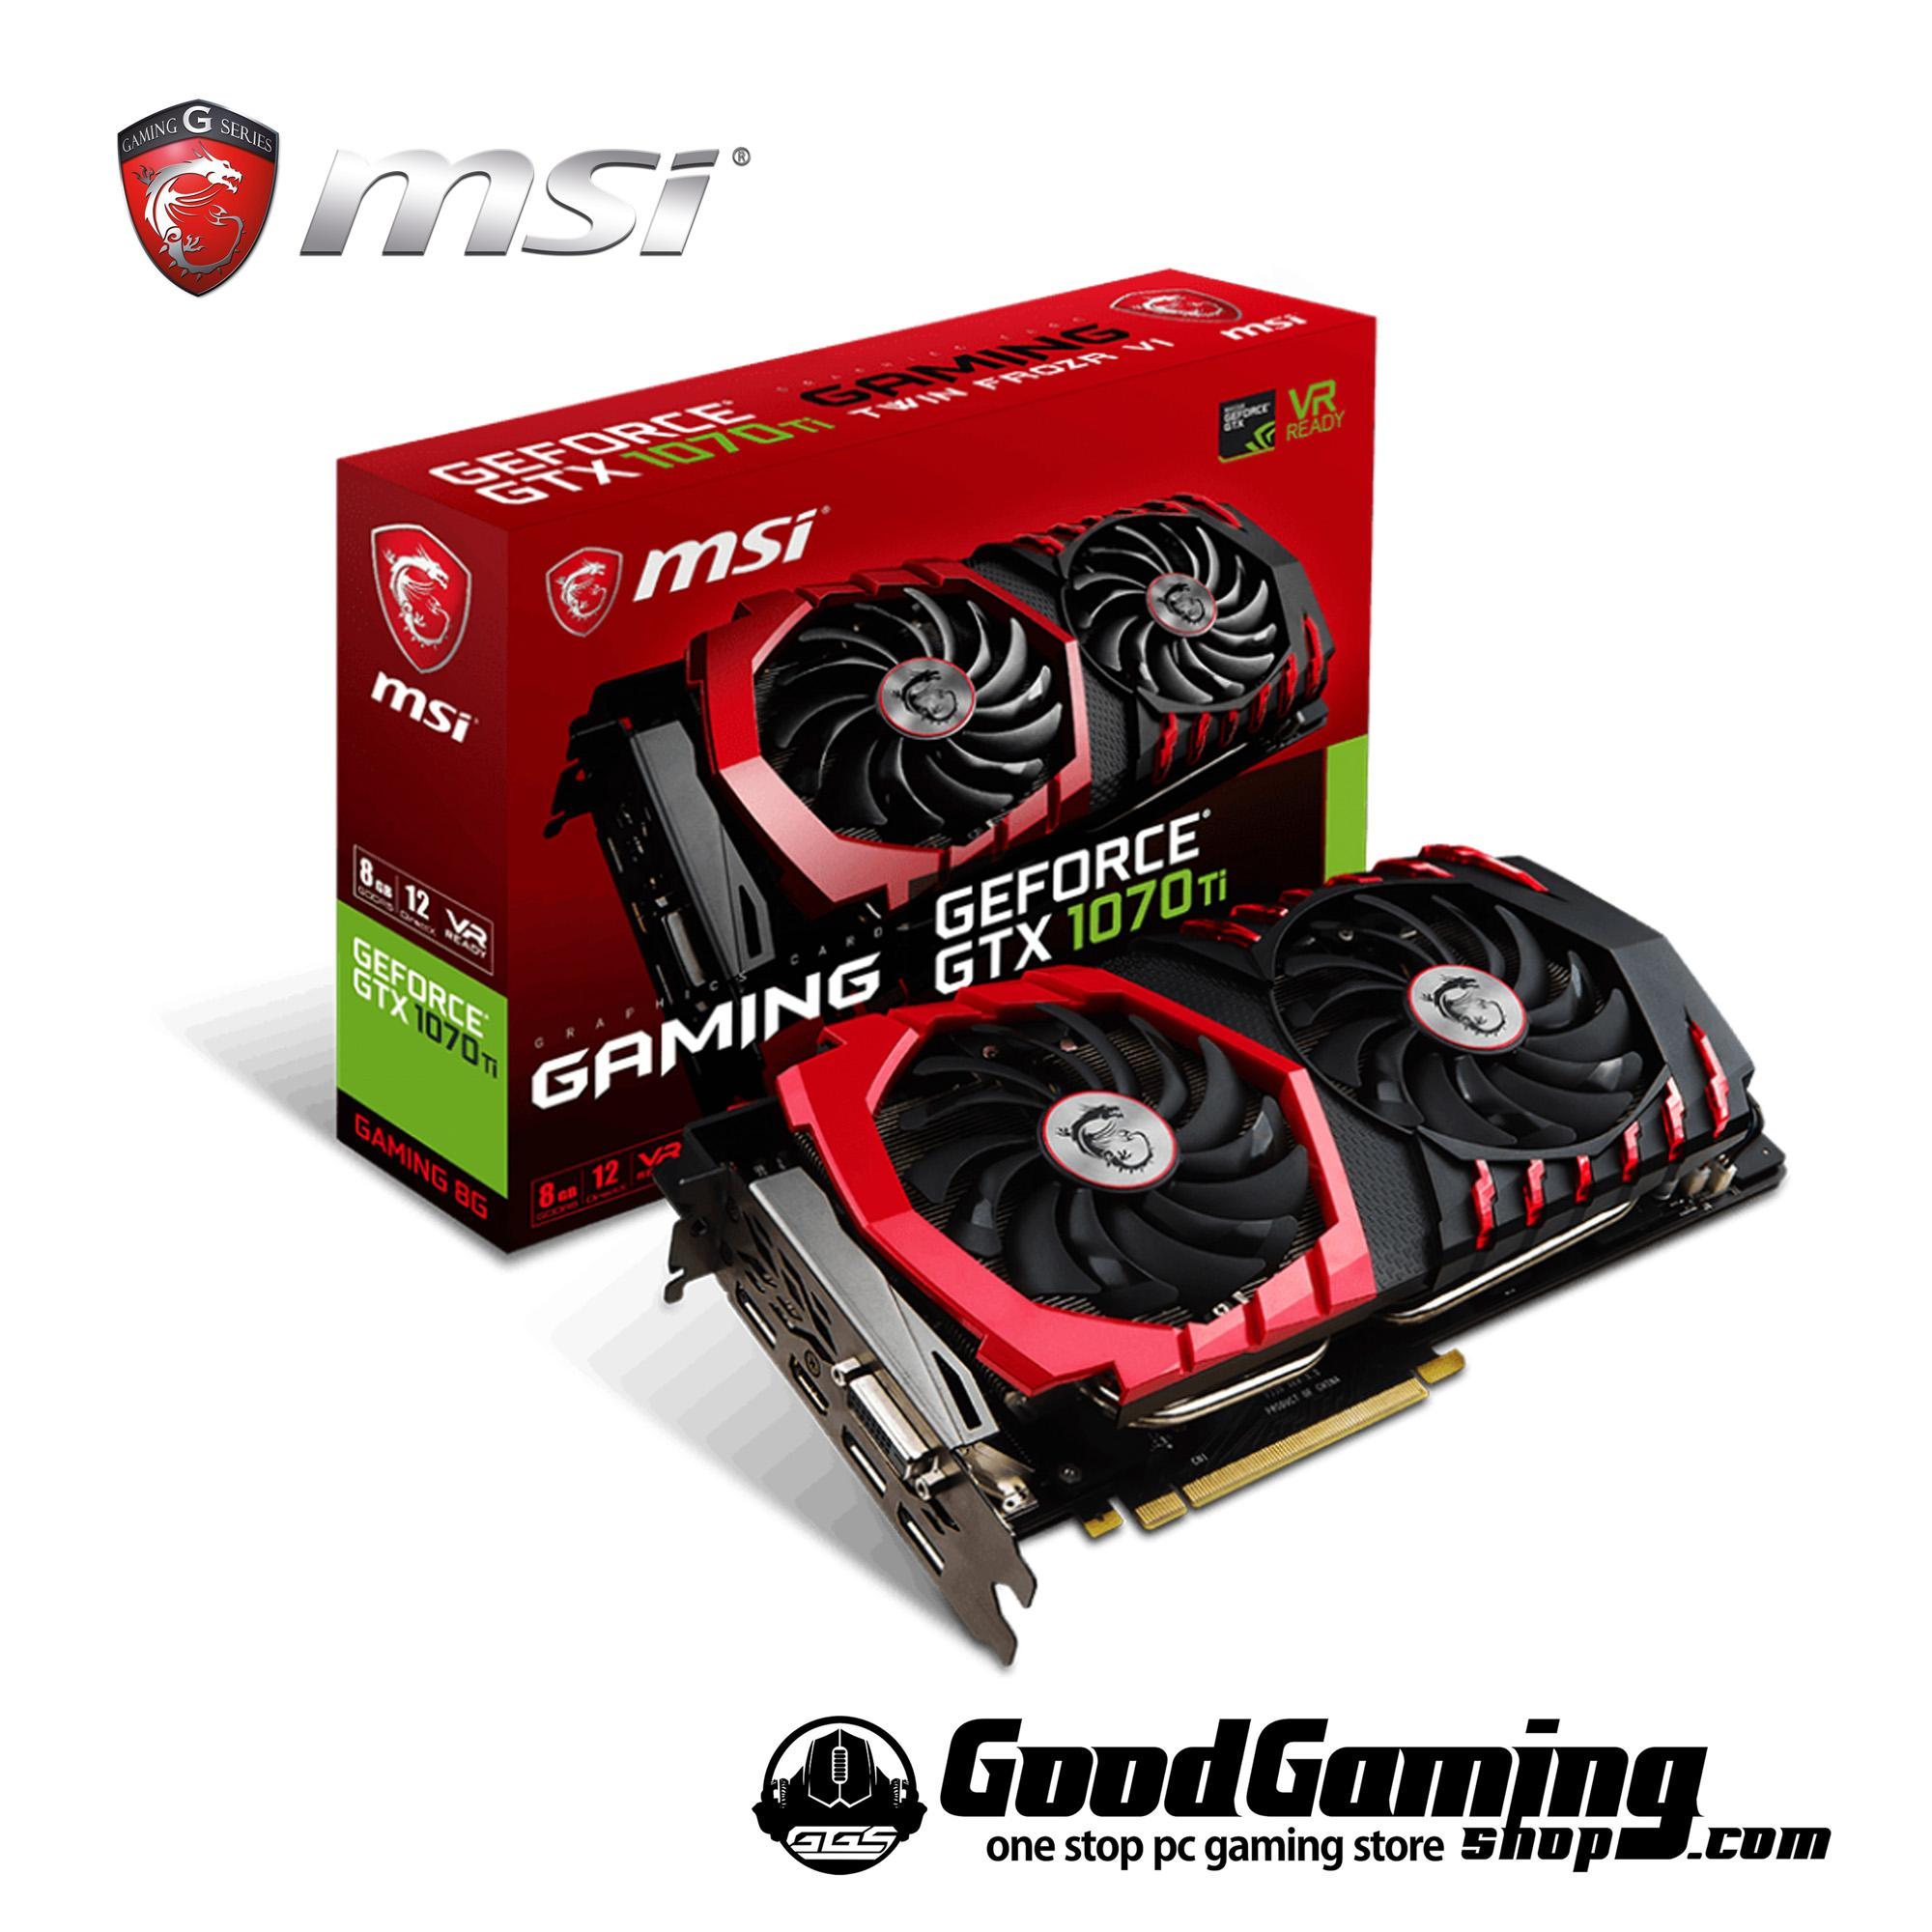 MSI GeForce GTX1070 Ti Gaming 8G